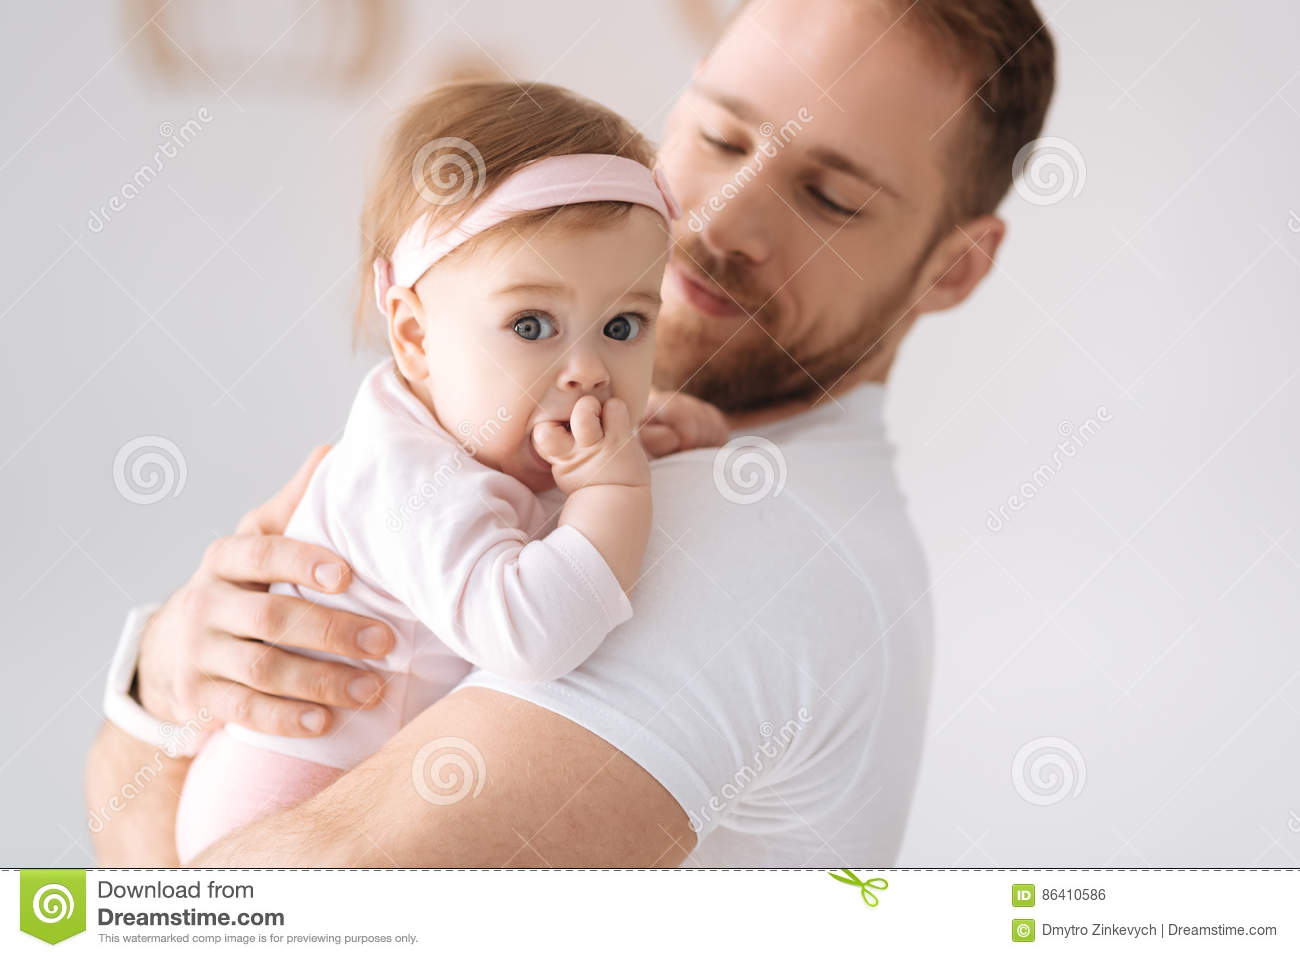 Lovely child expressing emotions with the father